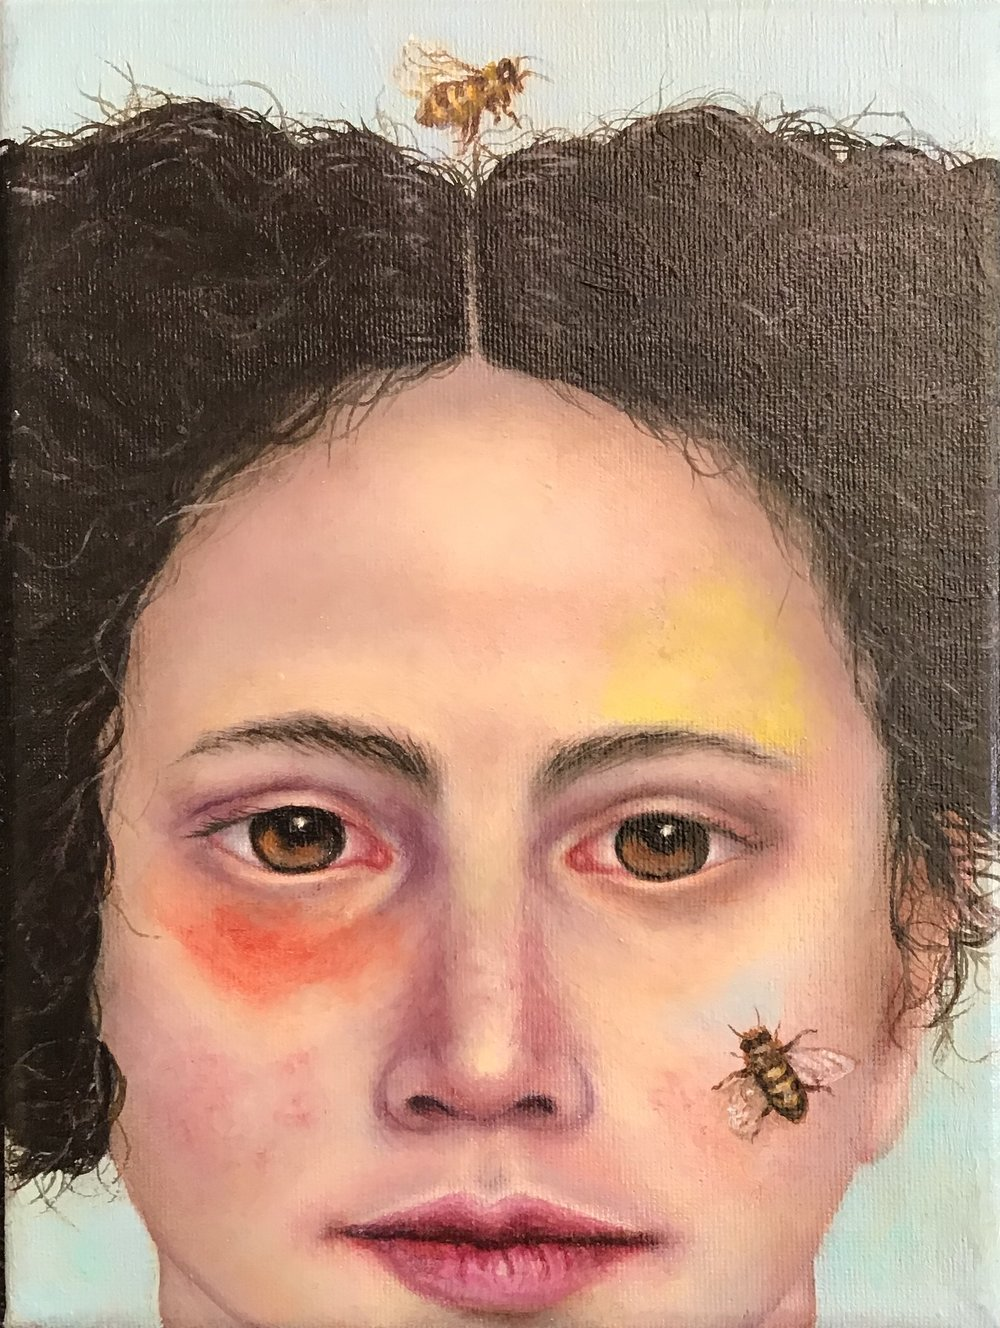 Graziella Mura - The perfume is invisible to the eyes - Oil on canvas -7x9,4 inches - 2018.JPG